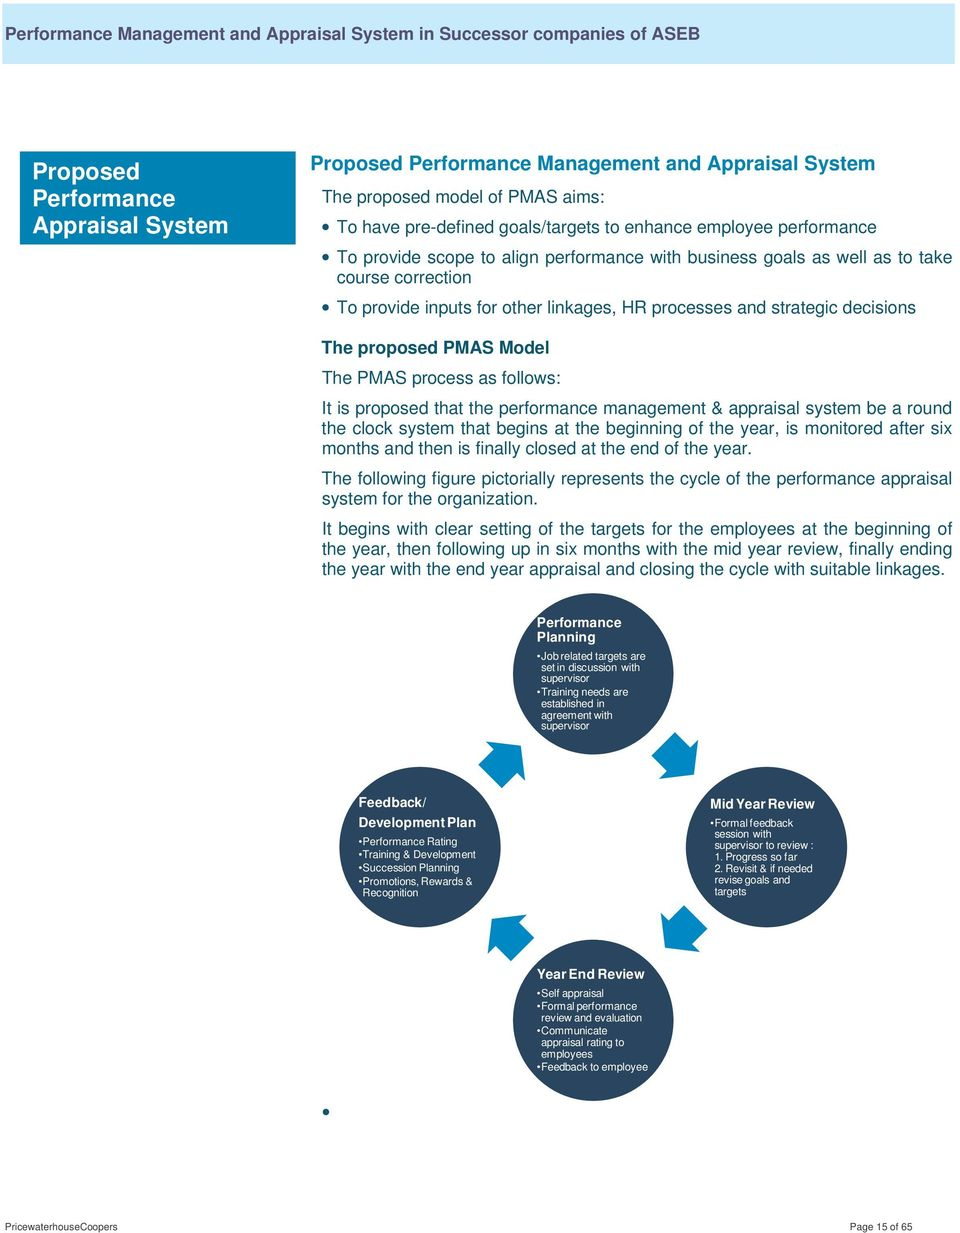 process as follows: It is proposed that the performance management & appraisal system be a round the clock system that begins at the beginning of the year, is monitored after six months and then is